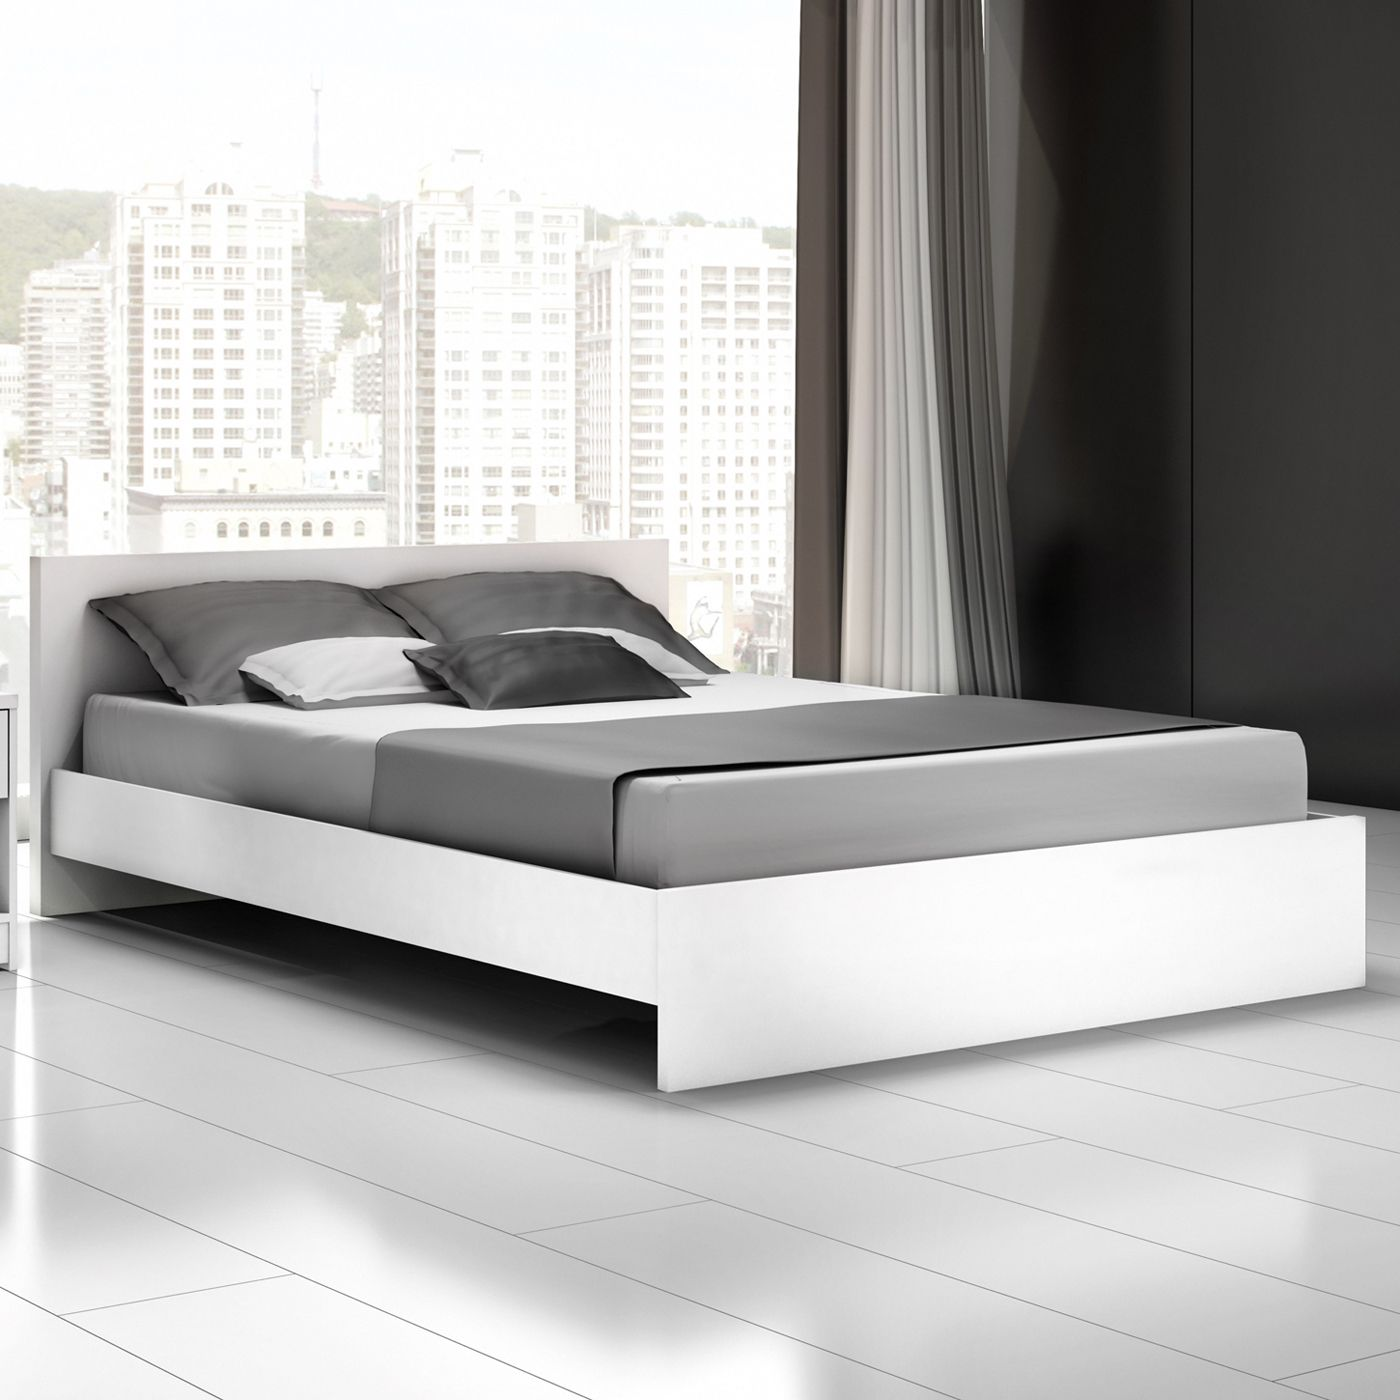 Shop Stellar Home Furniture S20 Euro Platform Bed & Headboard at ATG